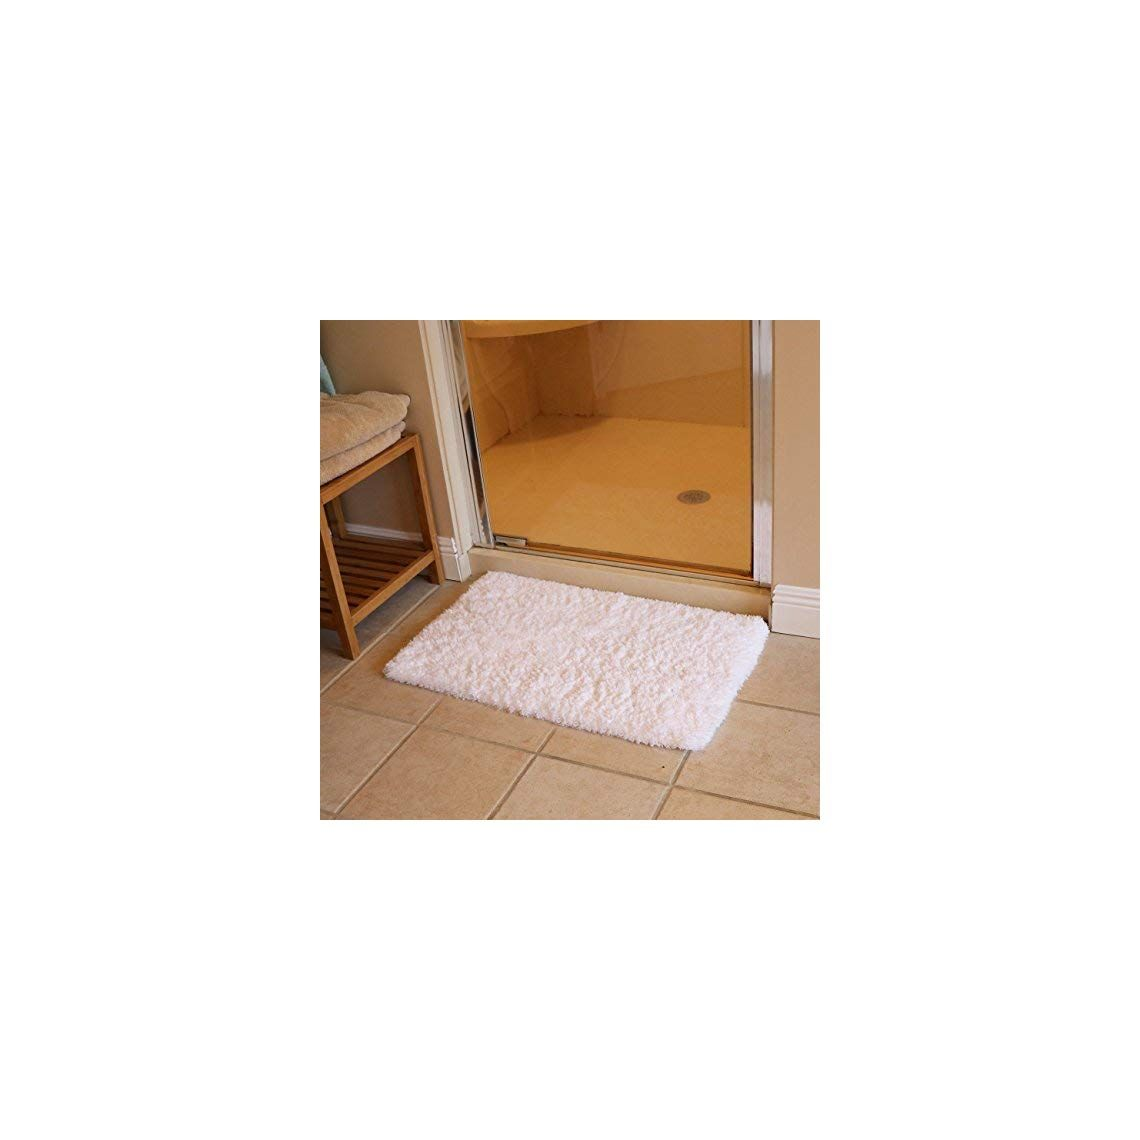 Kmat 20x32 Inch White Bath Mat Soft Shaggy Bathroom Rugs Non Slip Rubber Shower Rugs Luxury Microfiber Washable Bath Rug For Floor Bathroom Bedroom Living Room In 2020 Shaggy Bathroom Rugs